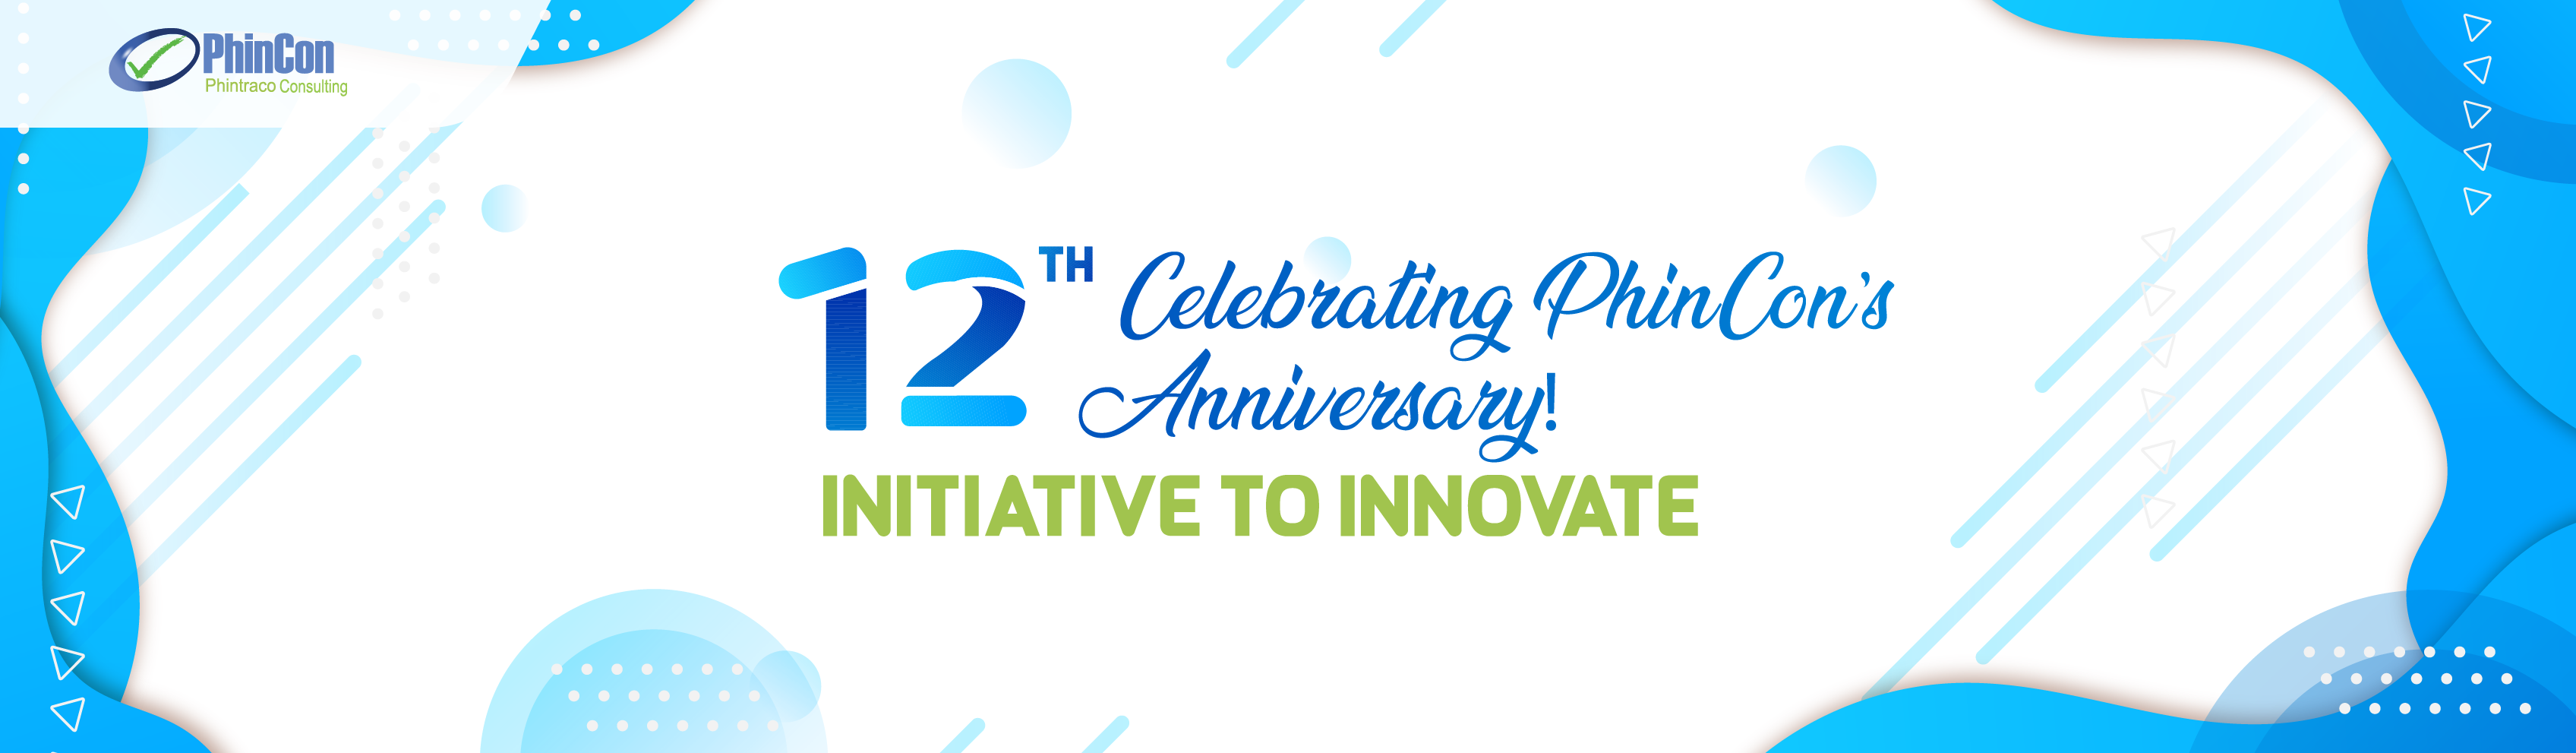 Celebrating 12th Anniversary, PhinCon Remains Consistent in Providing Its Best Solutions and Services